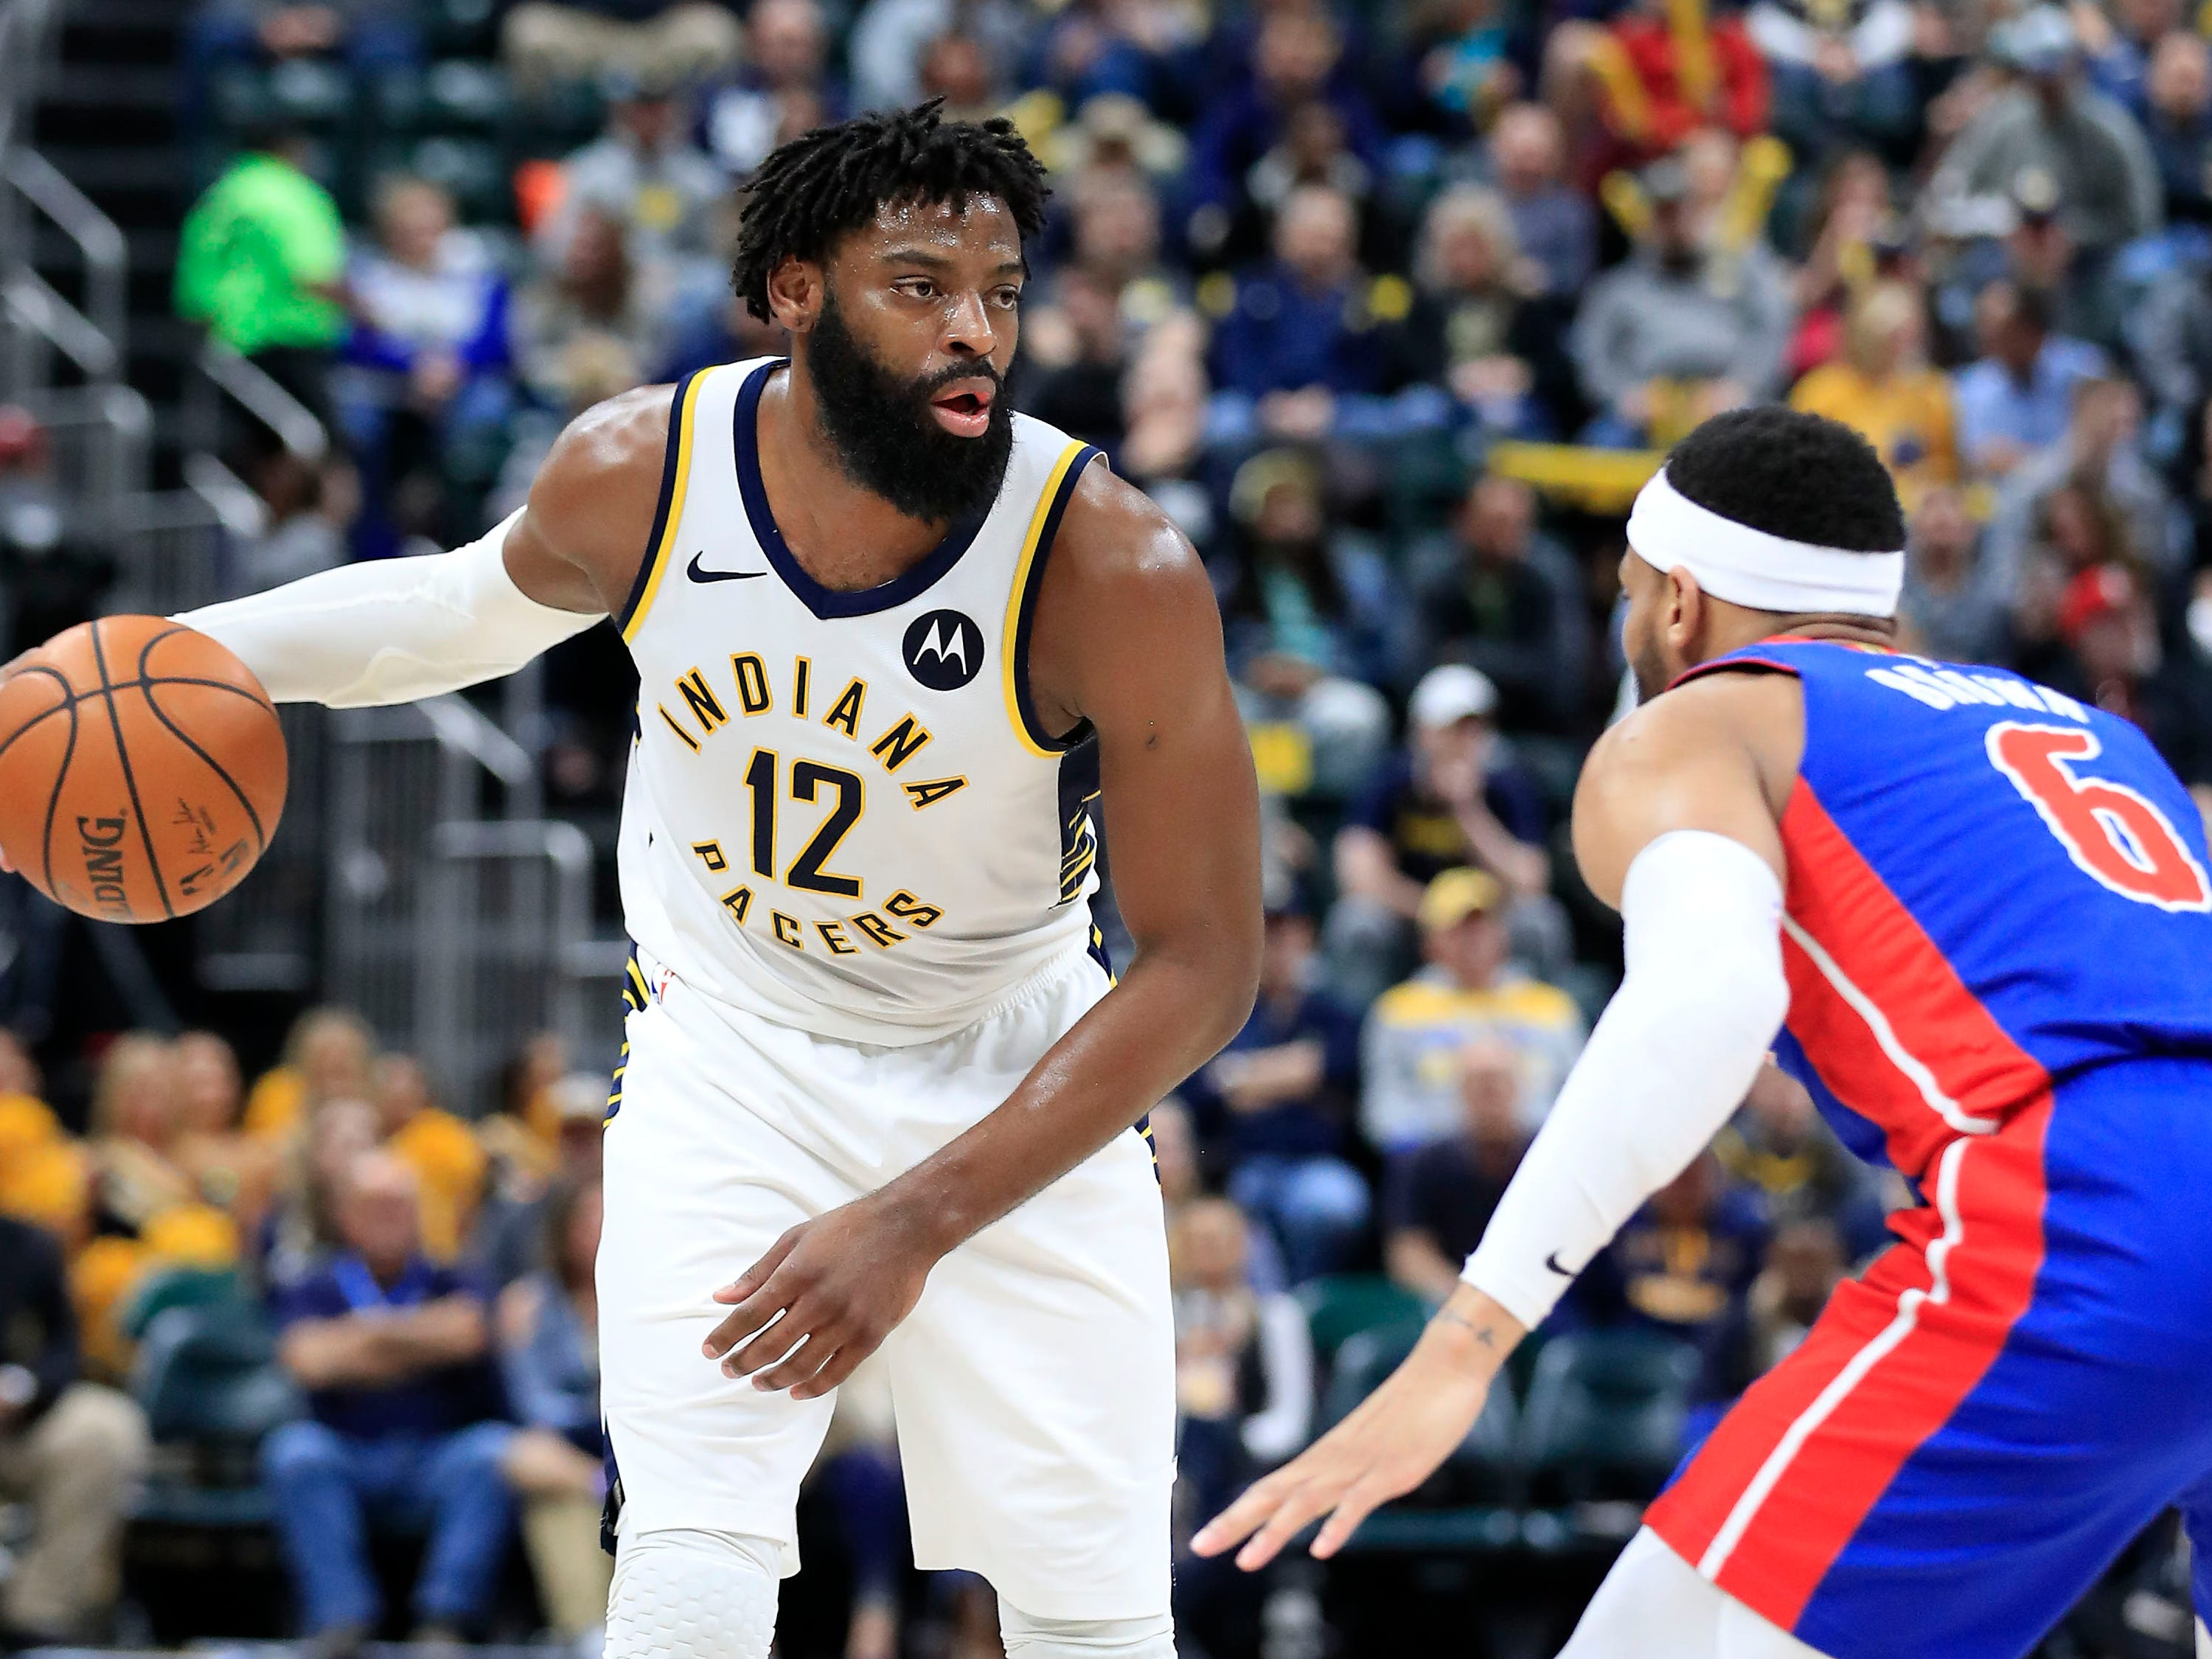 Indiana Pacers' Tyreke Evans dribbles against the Detroit Pistons' Bruce Brown at Bankers Life Fieldhouse on April 1, 2019 in Indianapolis.